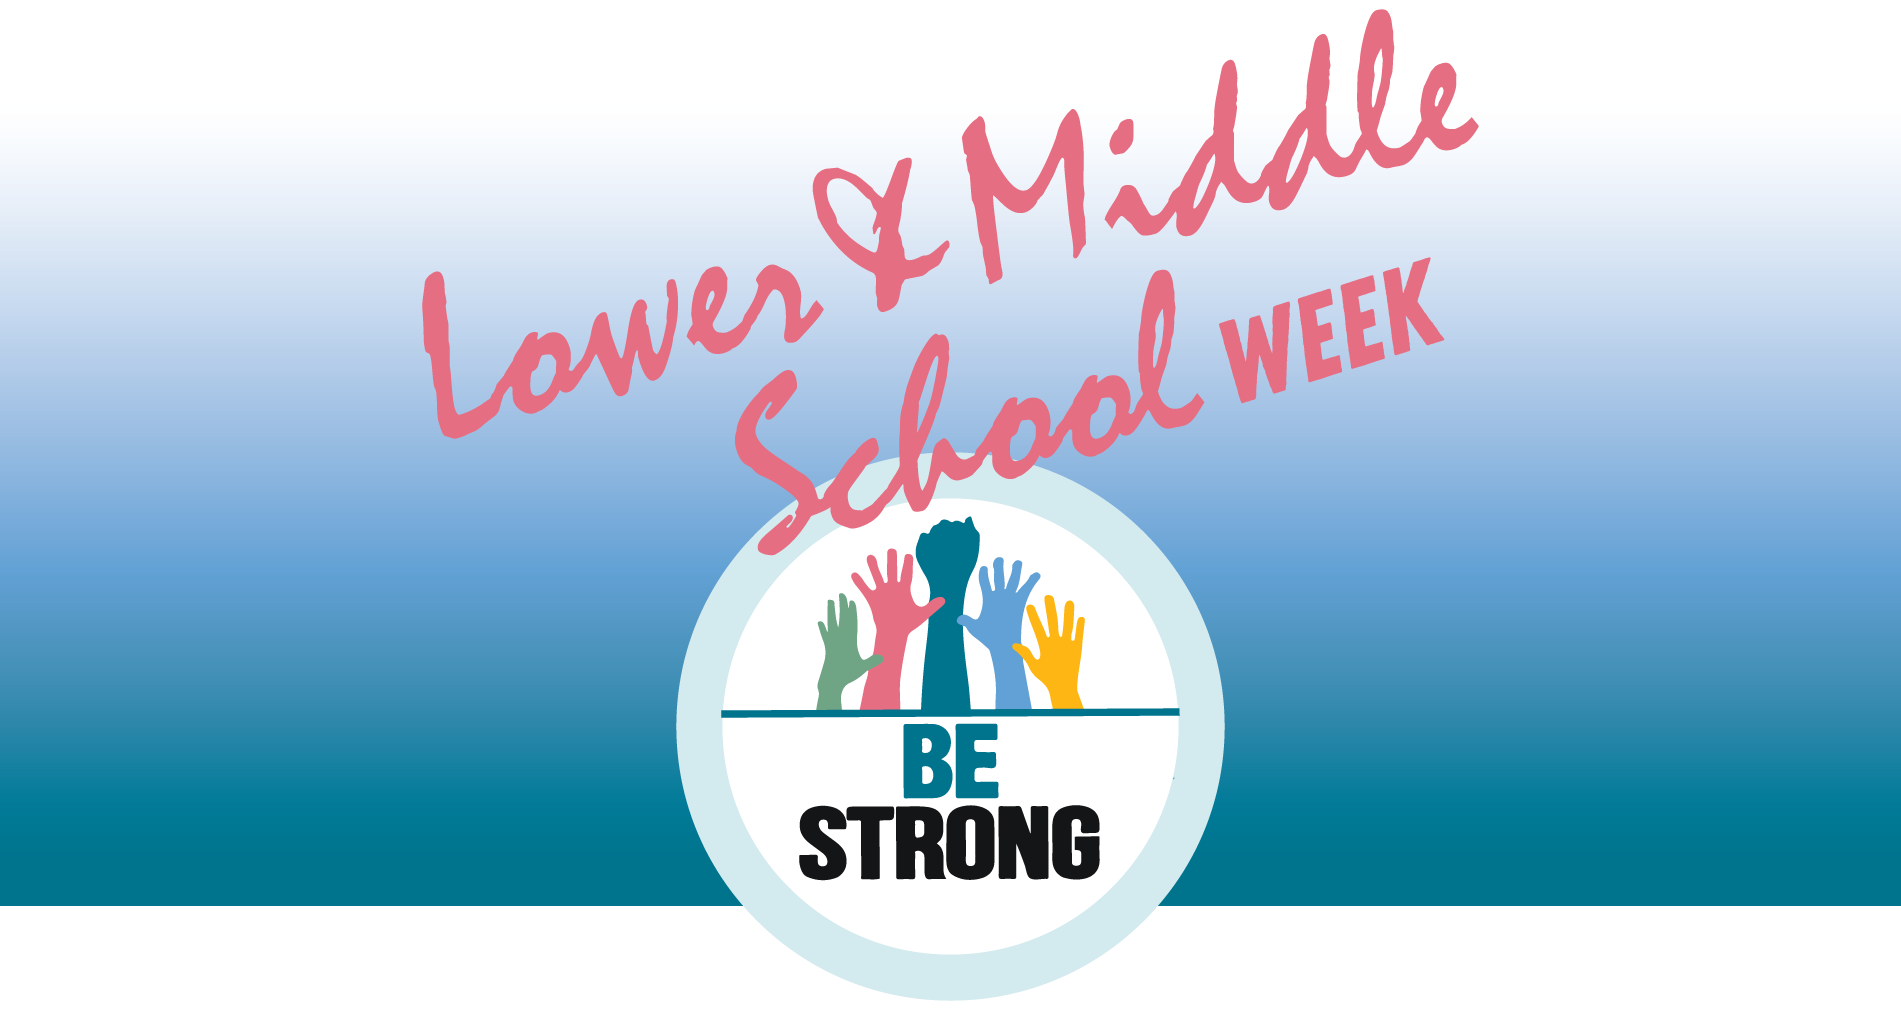 Be-Strong_Featured-Event_Lower-and-Middle-School.png